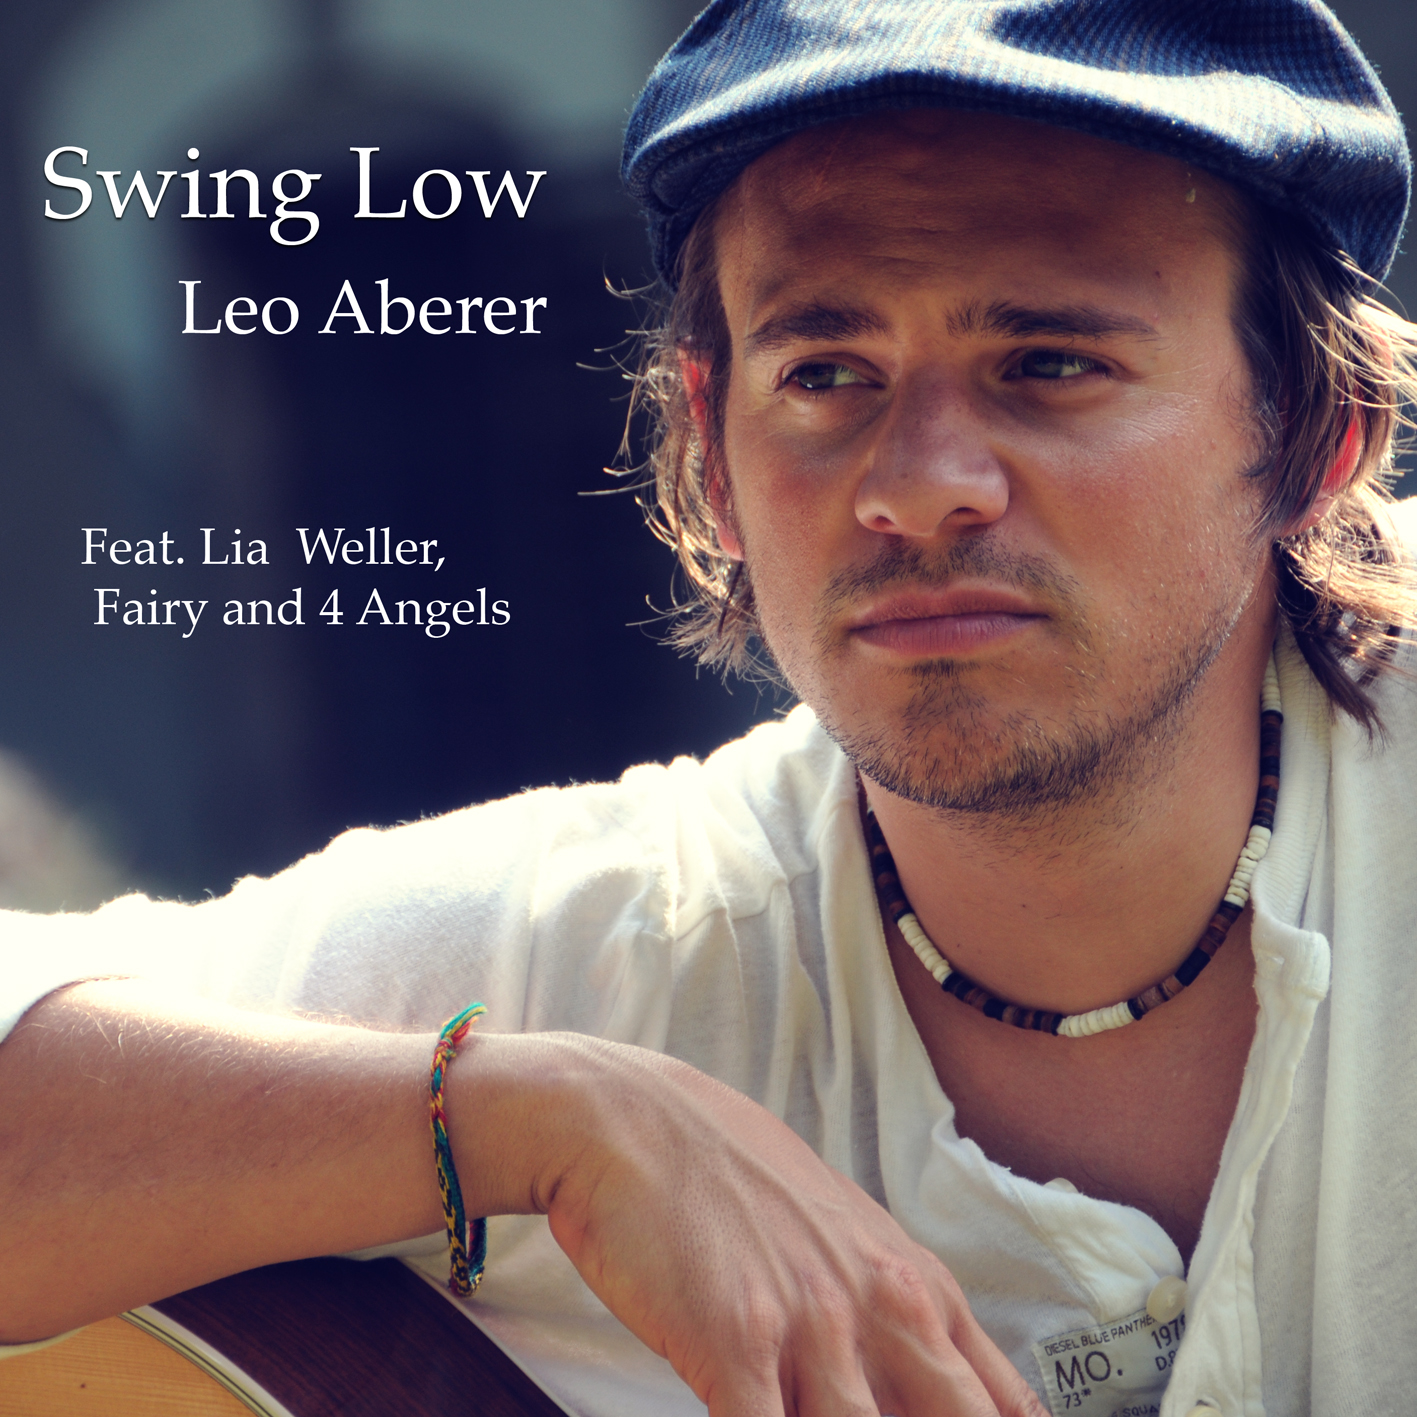 leo_aberer_lia_weller_swing_low_v